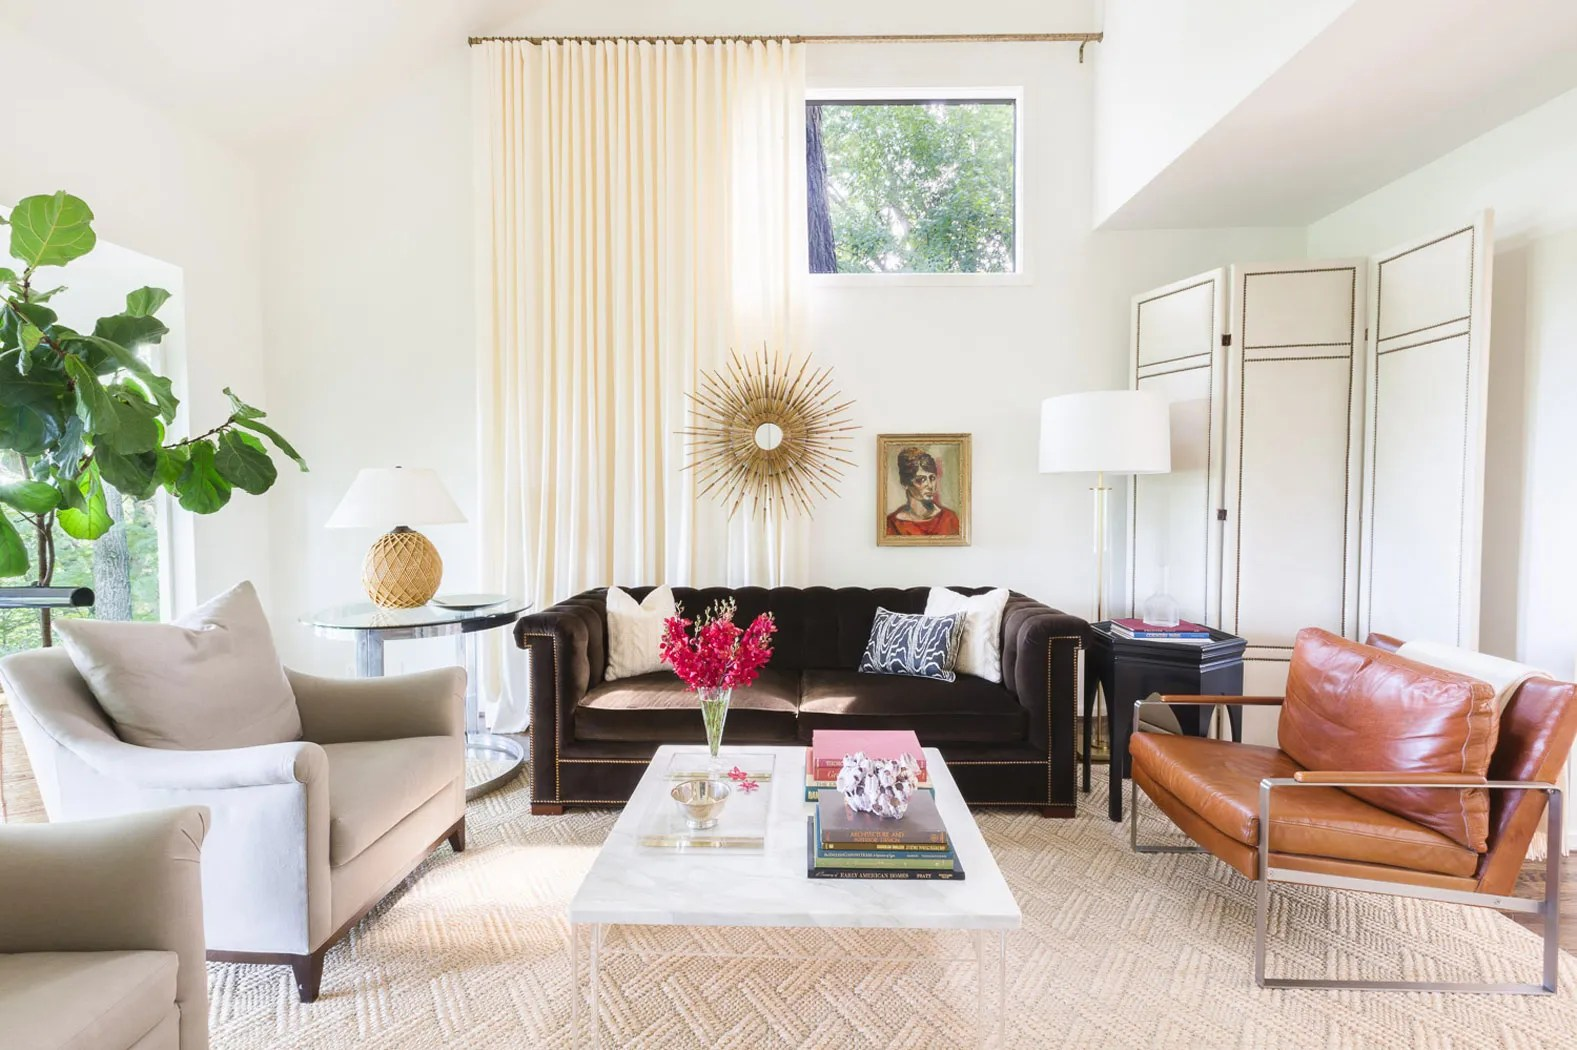 Modish See How One Living Room Went From Boring To Living Room Photos Design Ideas Architectural Digest Indian Living Room Interior Design S Sample S Interior Design Living Room interior Interior Design Living Room Pictures